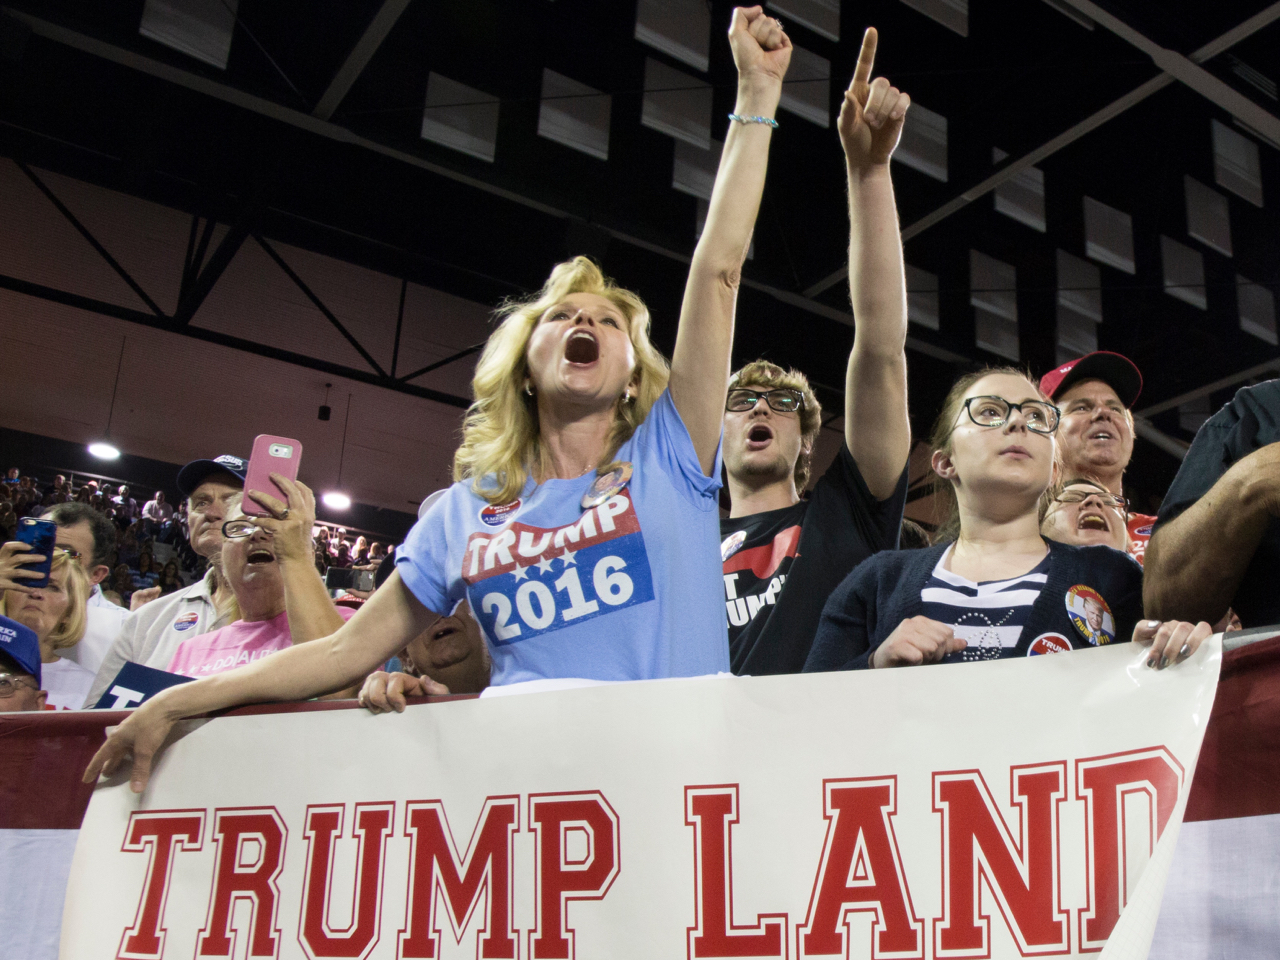 Donald Trump Holds Campaign Rally At Valdosta State University In Georgia